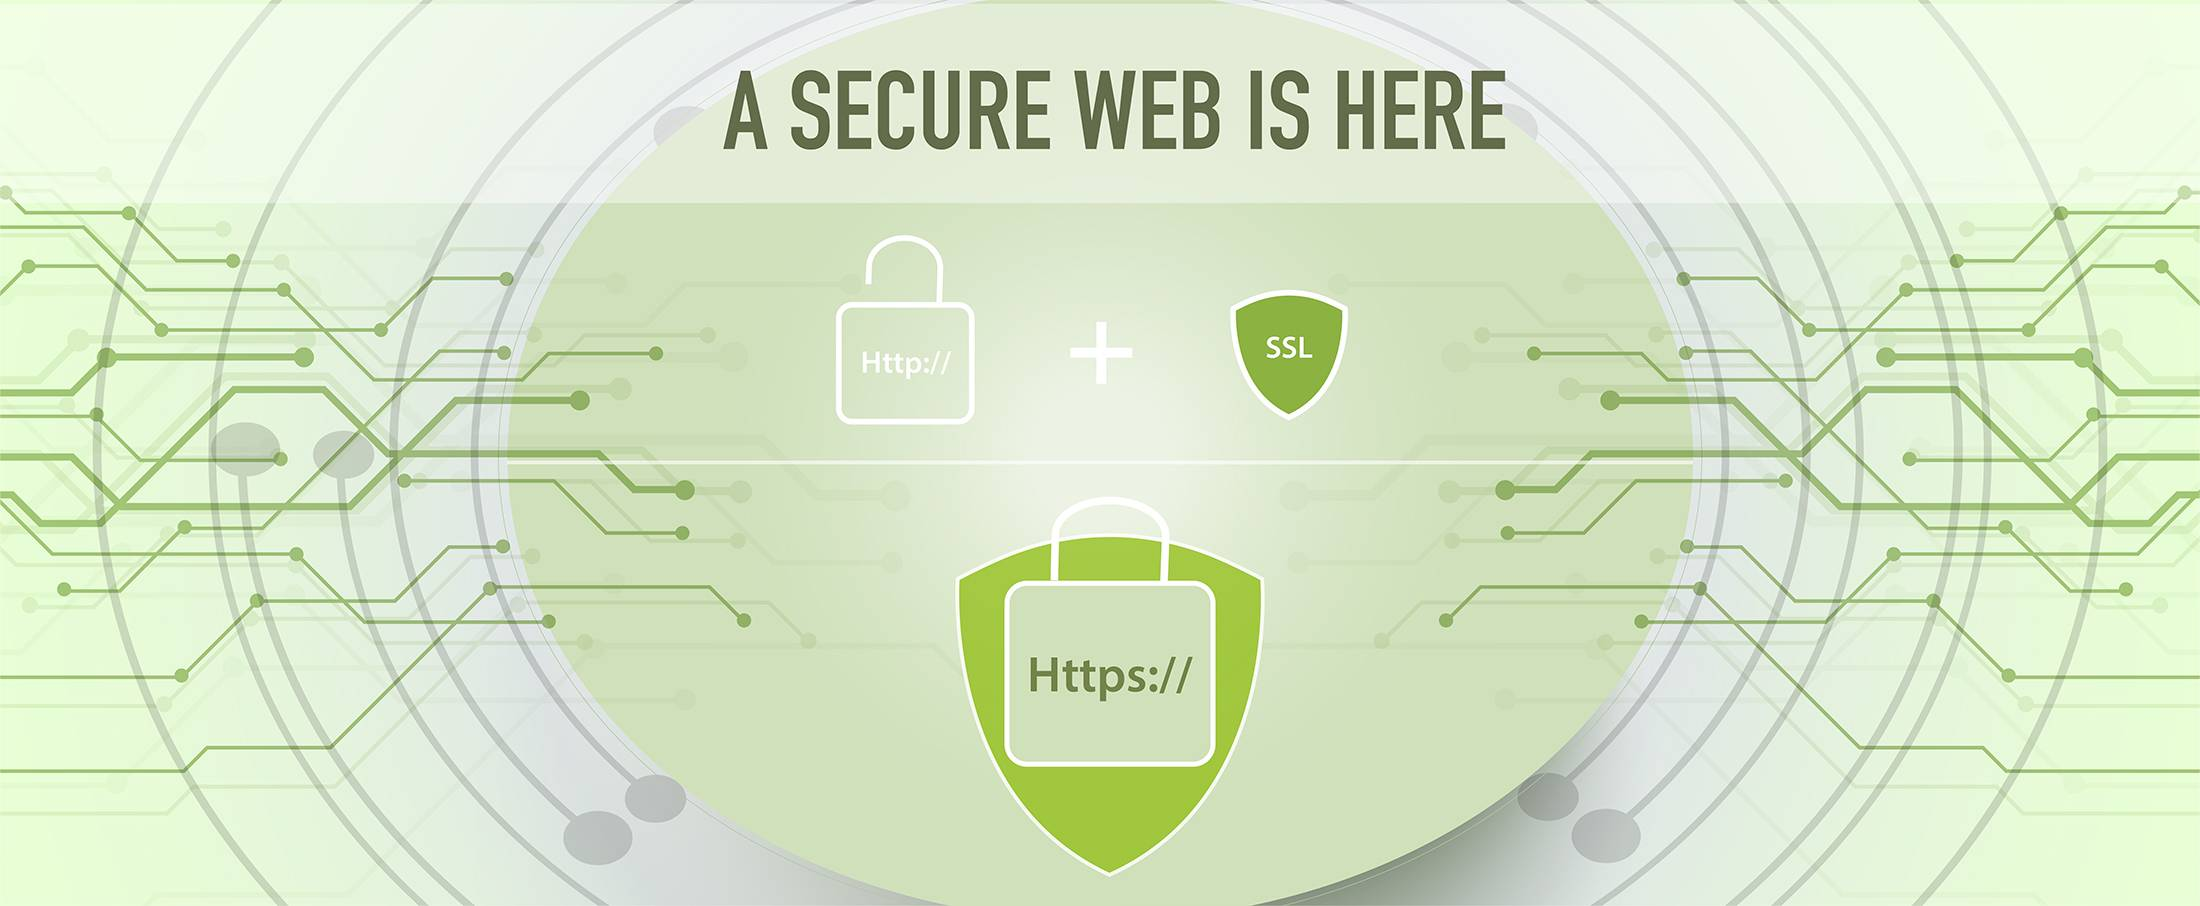 A secure web is here using https